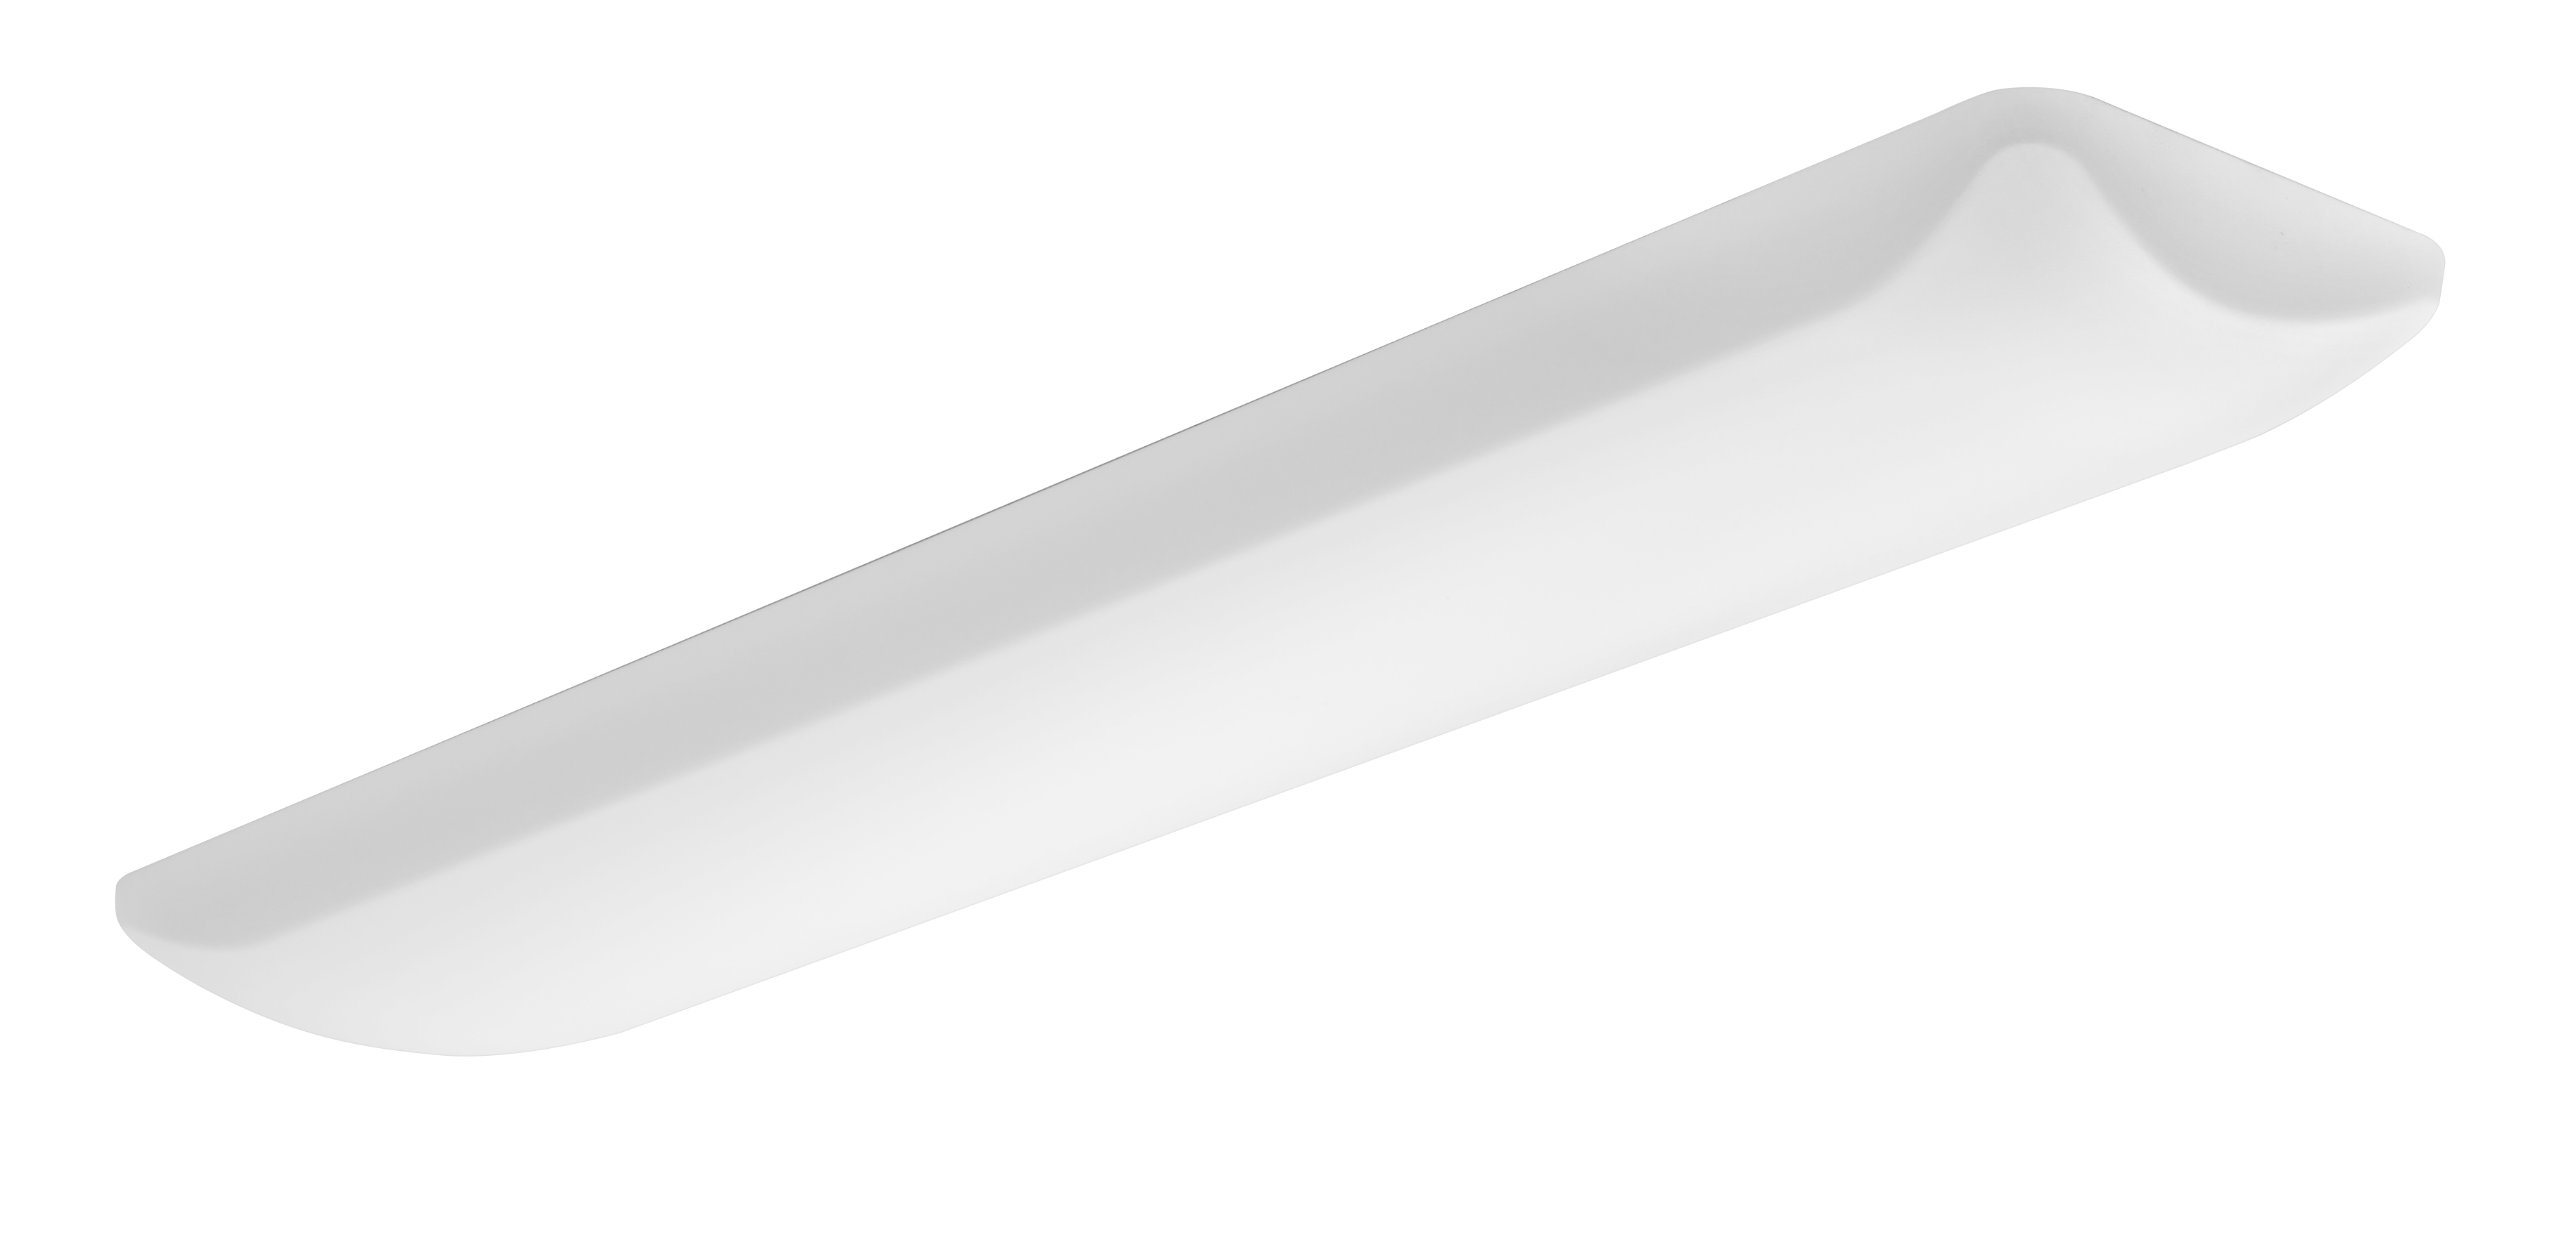 Lithonia Lighting FMLL 9 30840  4-Feet 4000K LED Low Profile Lightpuff with White Acrylic Diffuser